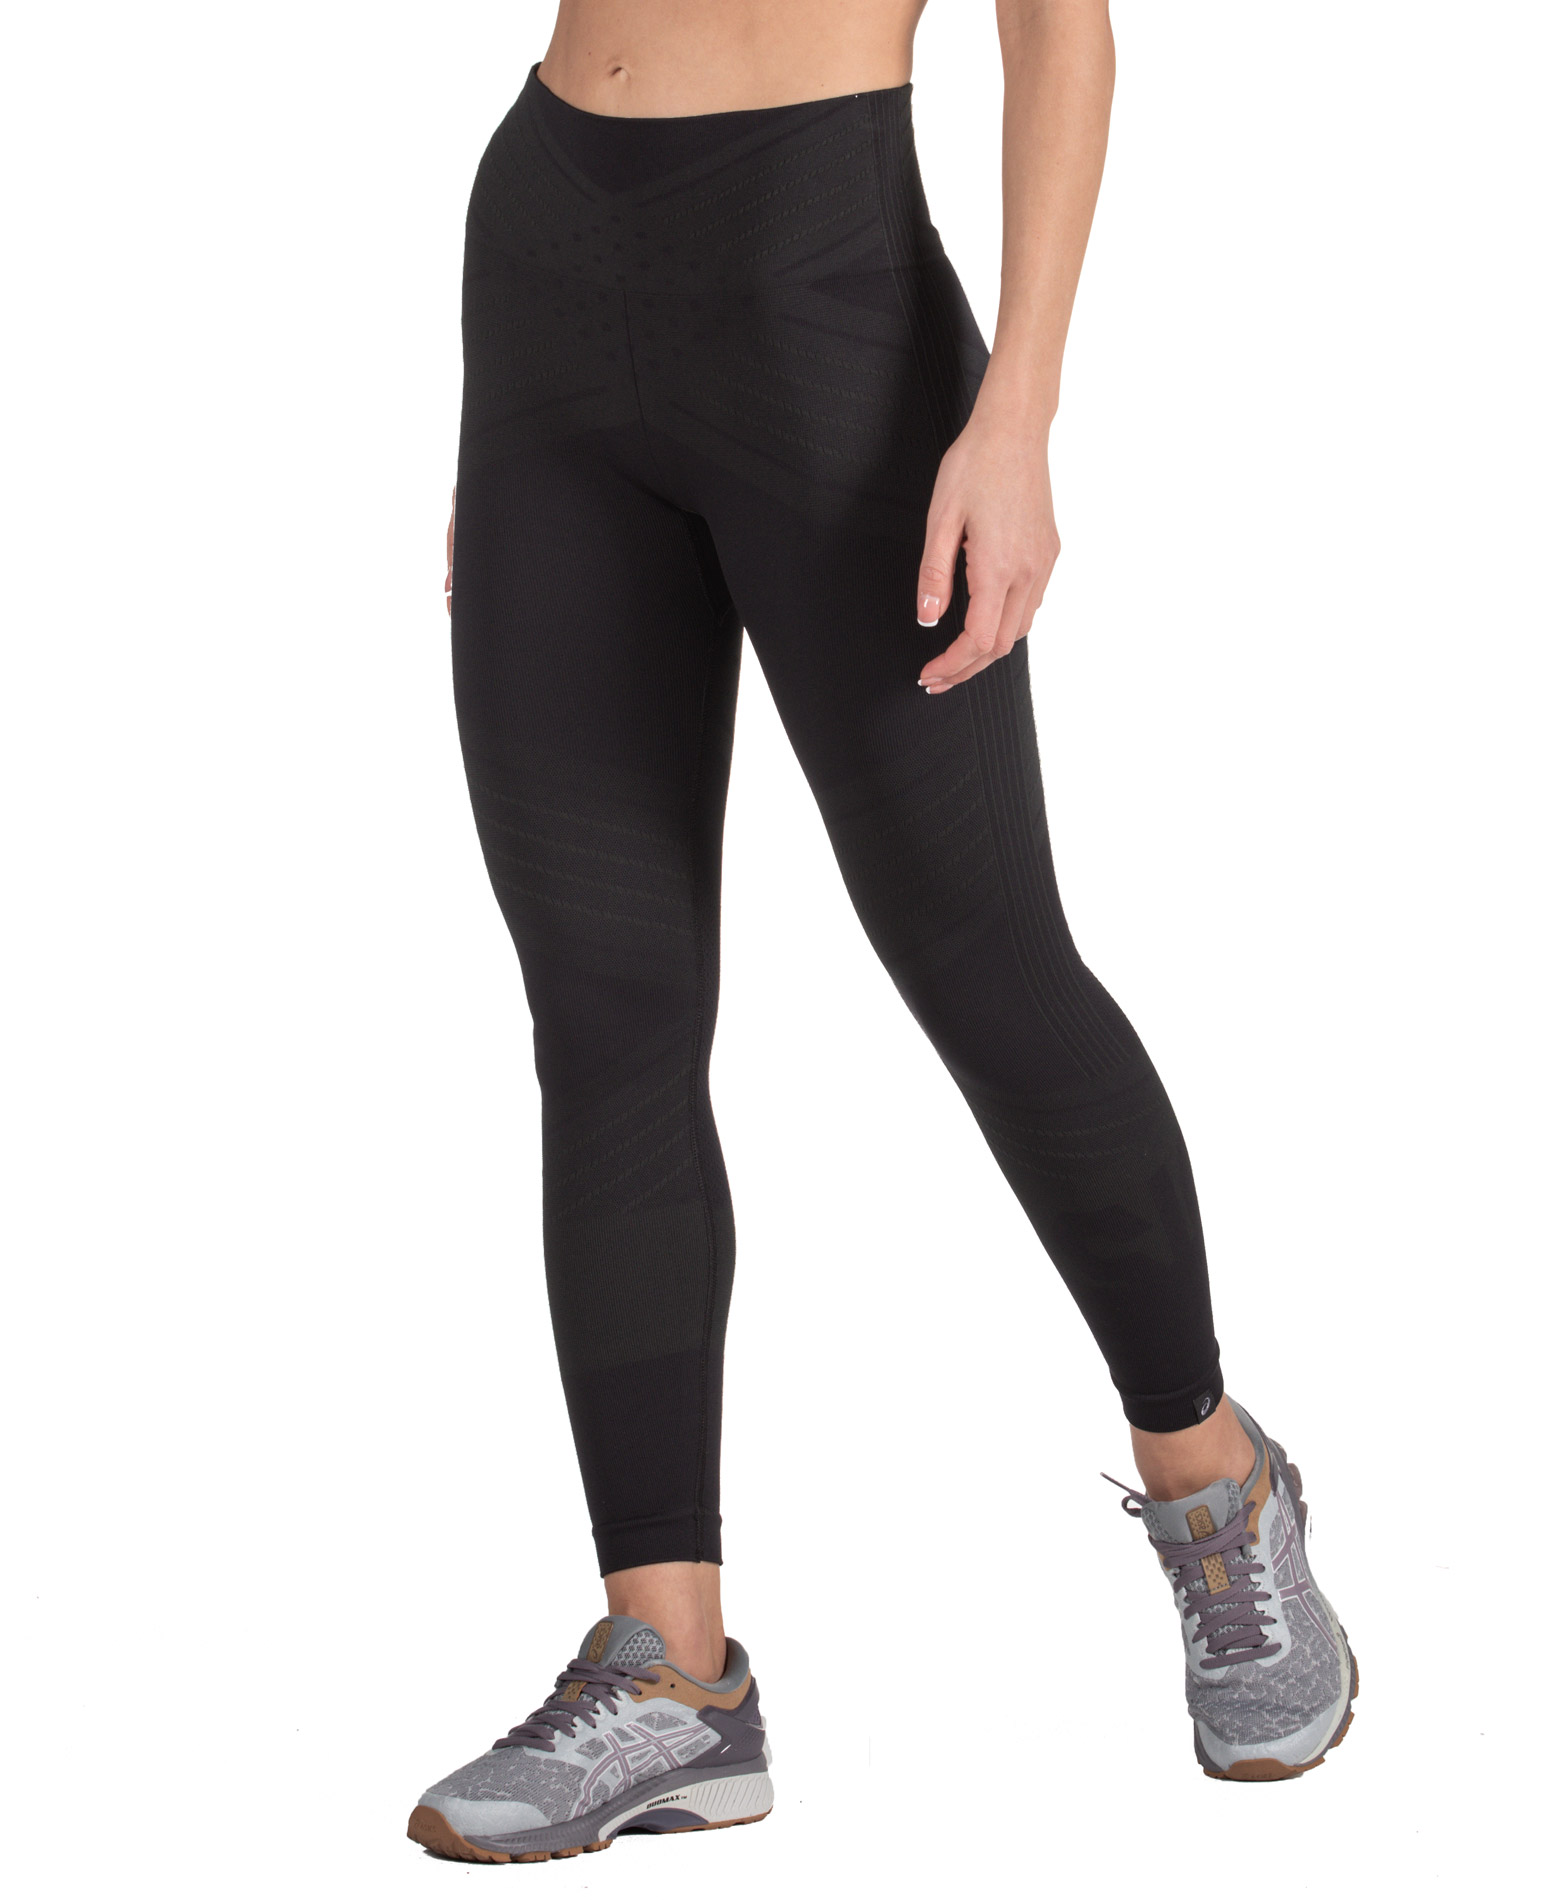 ASICS W SEAMLESS CPD TIGHT 2032A811-001 Μαύρο